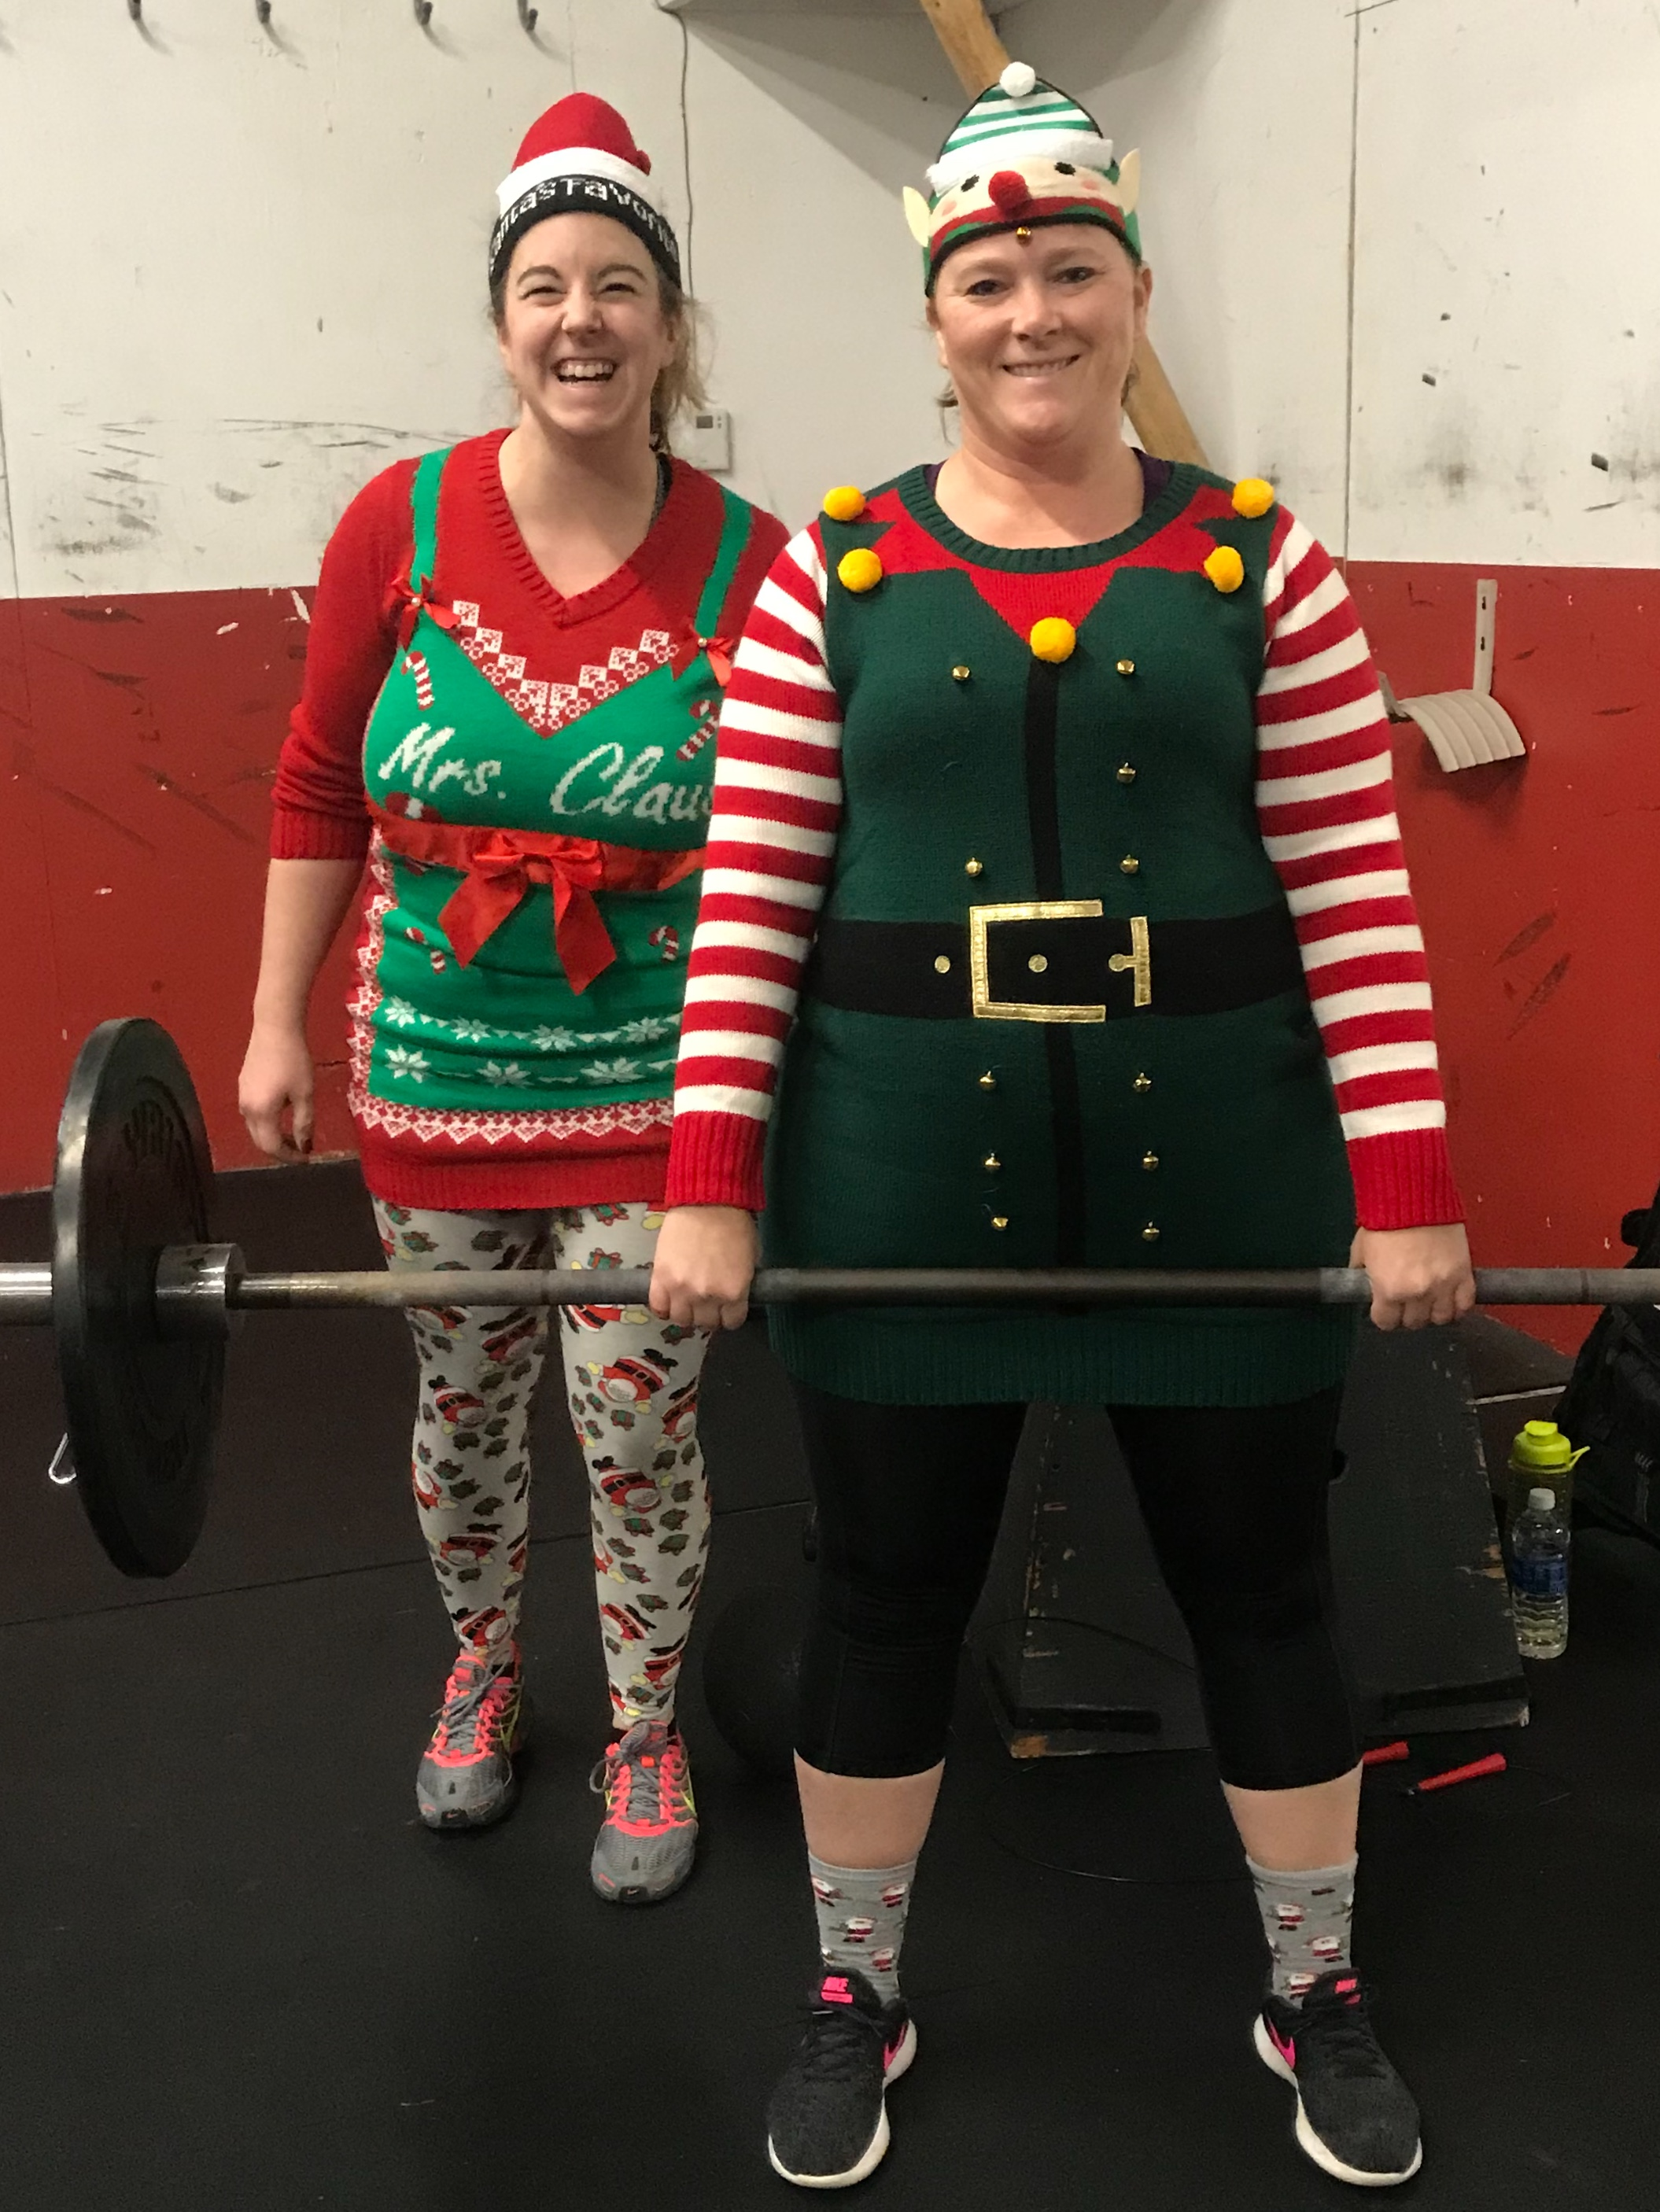 Saturday, December 30 WOD